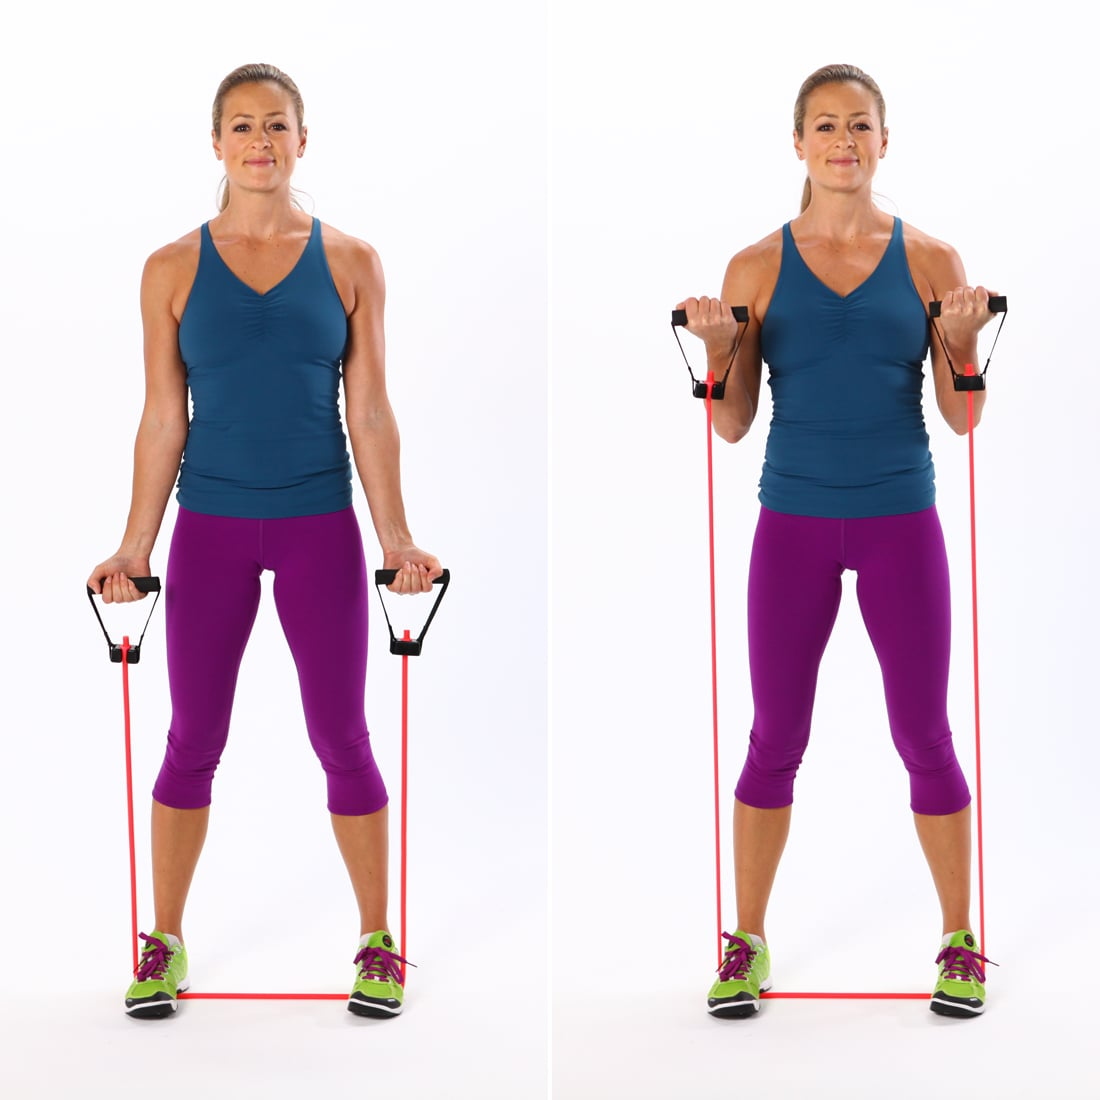 Resistance Band Workout For Biceps And Triceps Popsugar Fitness